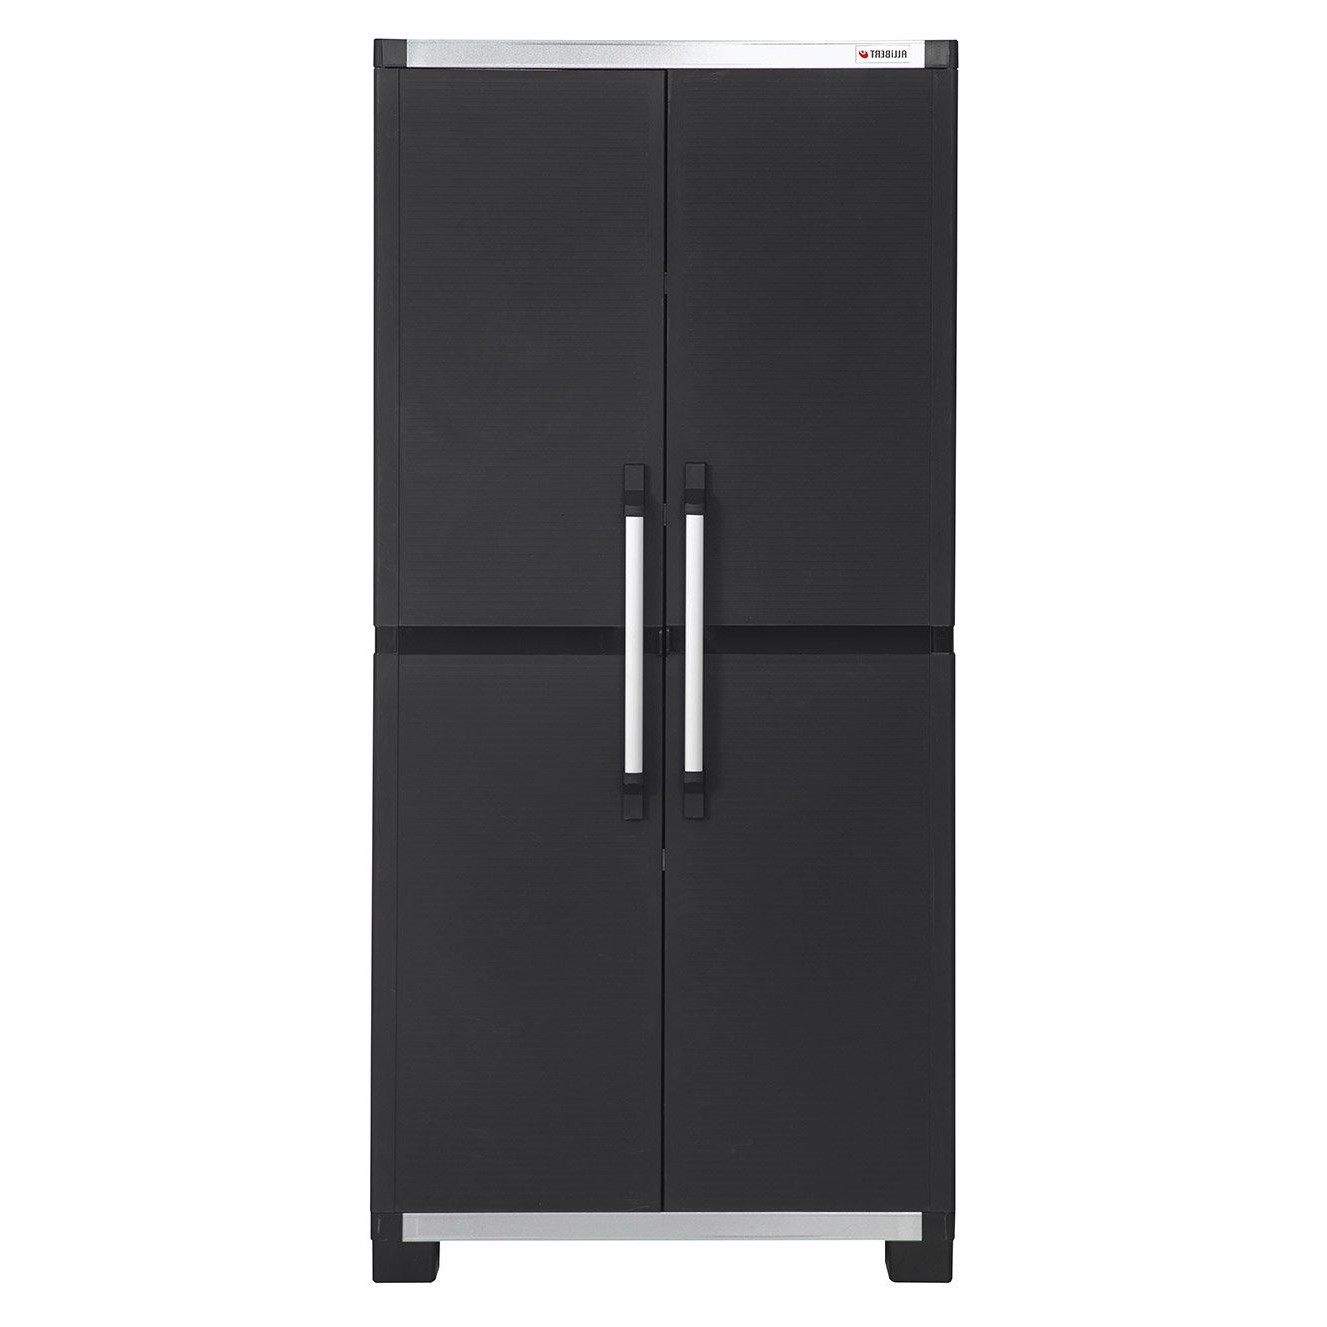 armoire haute resine brico depot armoire id es de d coration de maison xgnv226n62. Black Bedroom Furniture Sets. Home Design Ideas